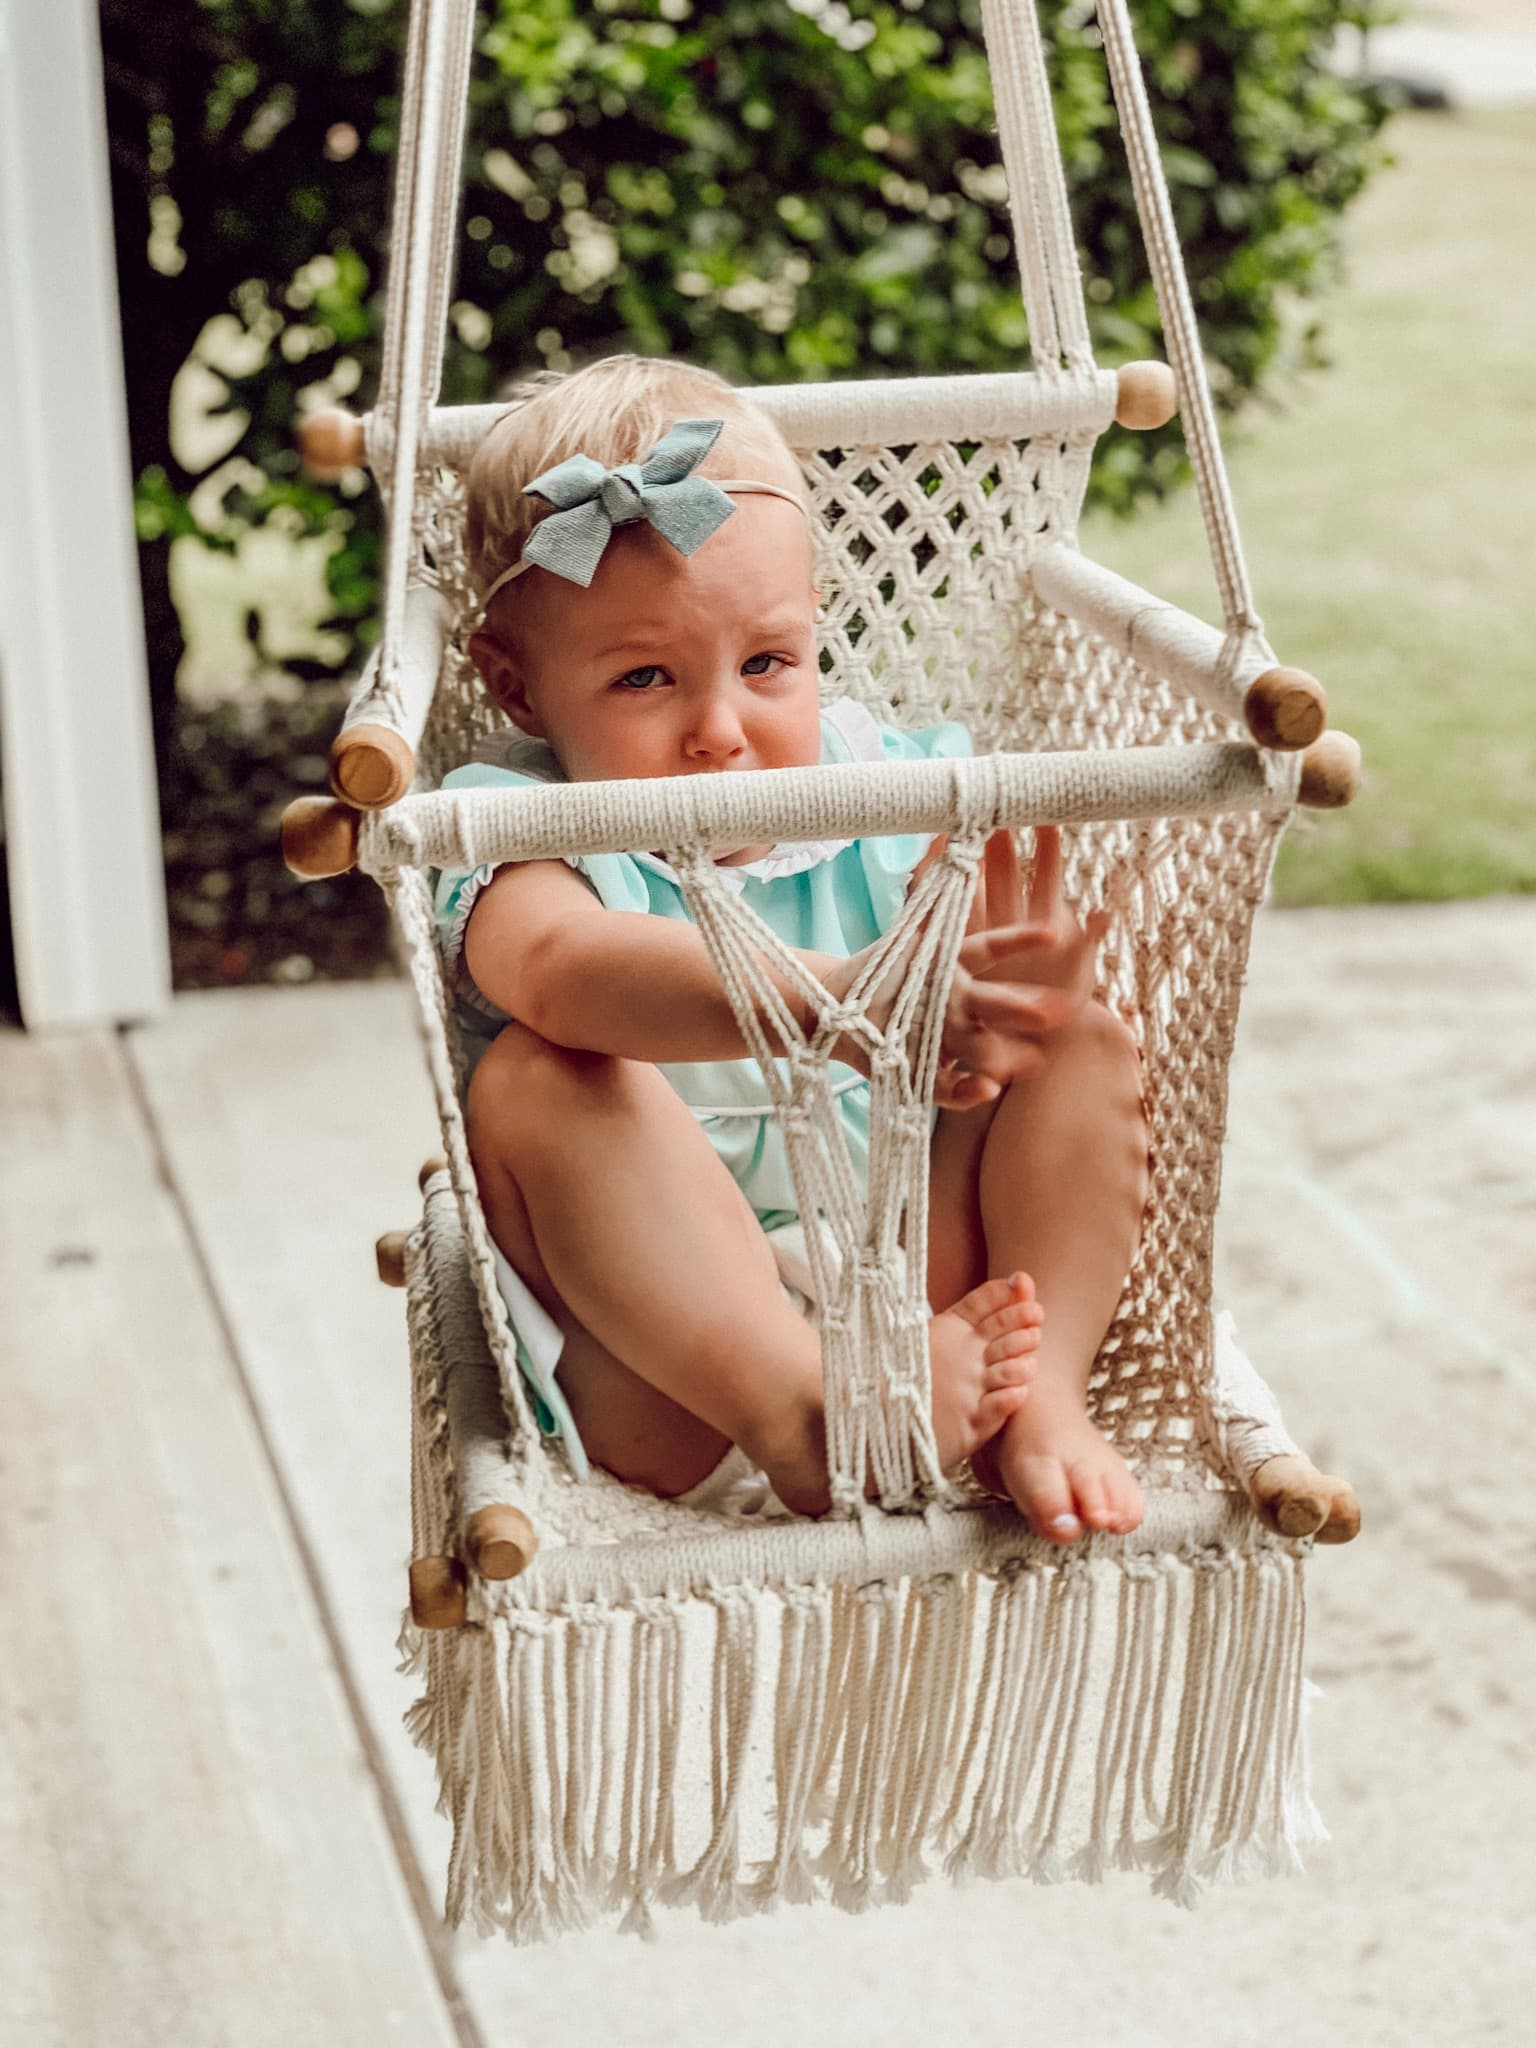 My Favorite Outdoor Toys for Summer | Momma Society